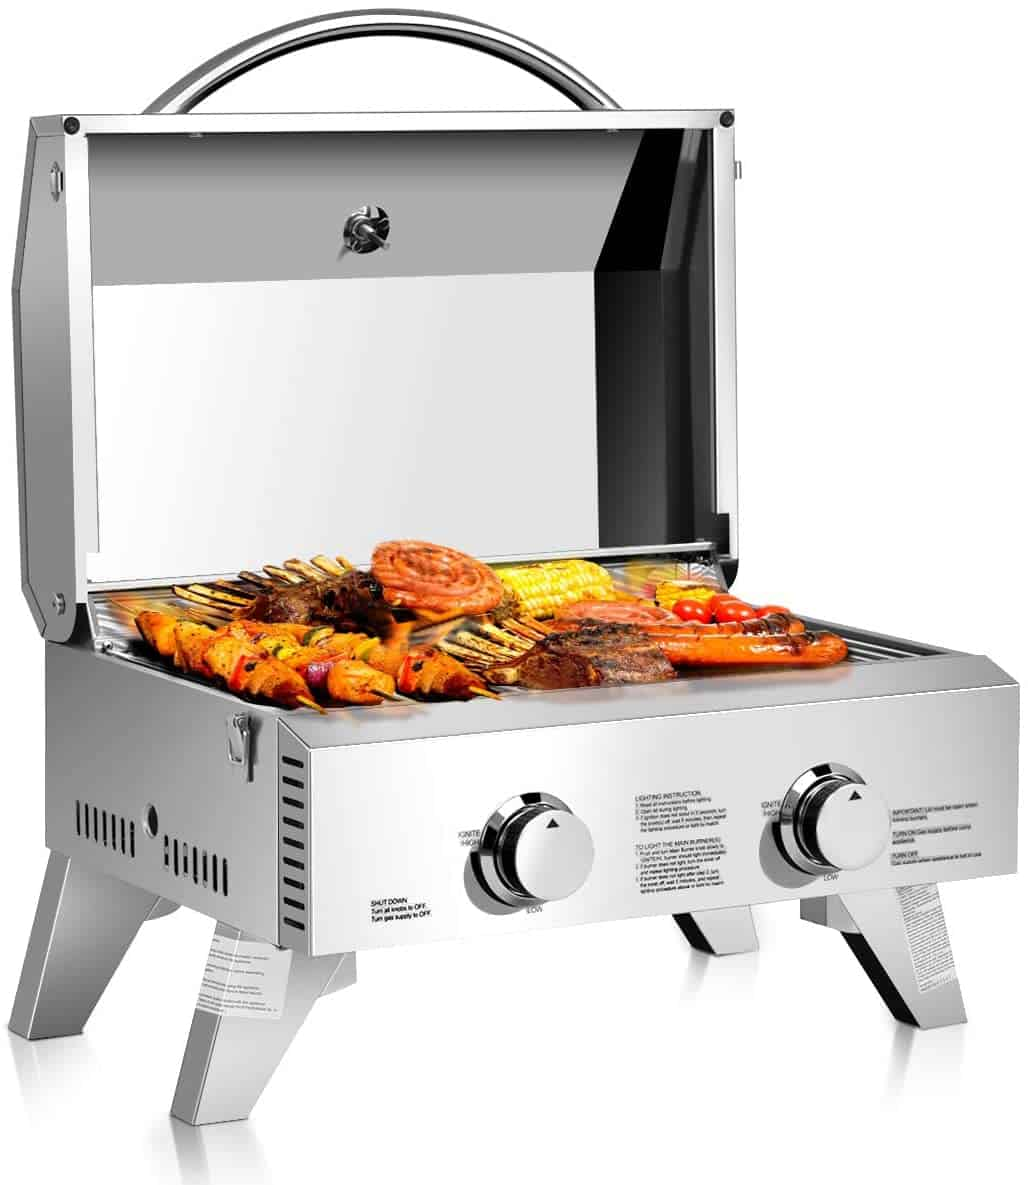 Giantex Propane Tabletop Two Burner Gas Grill